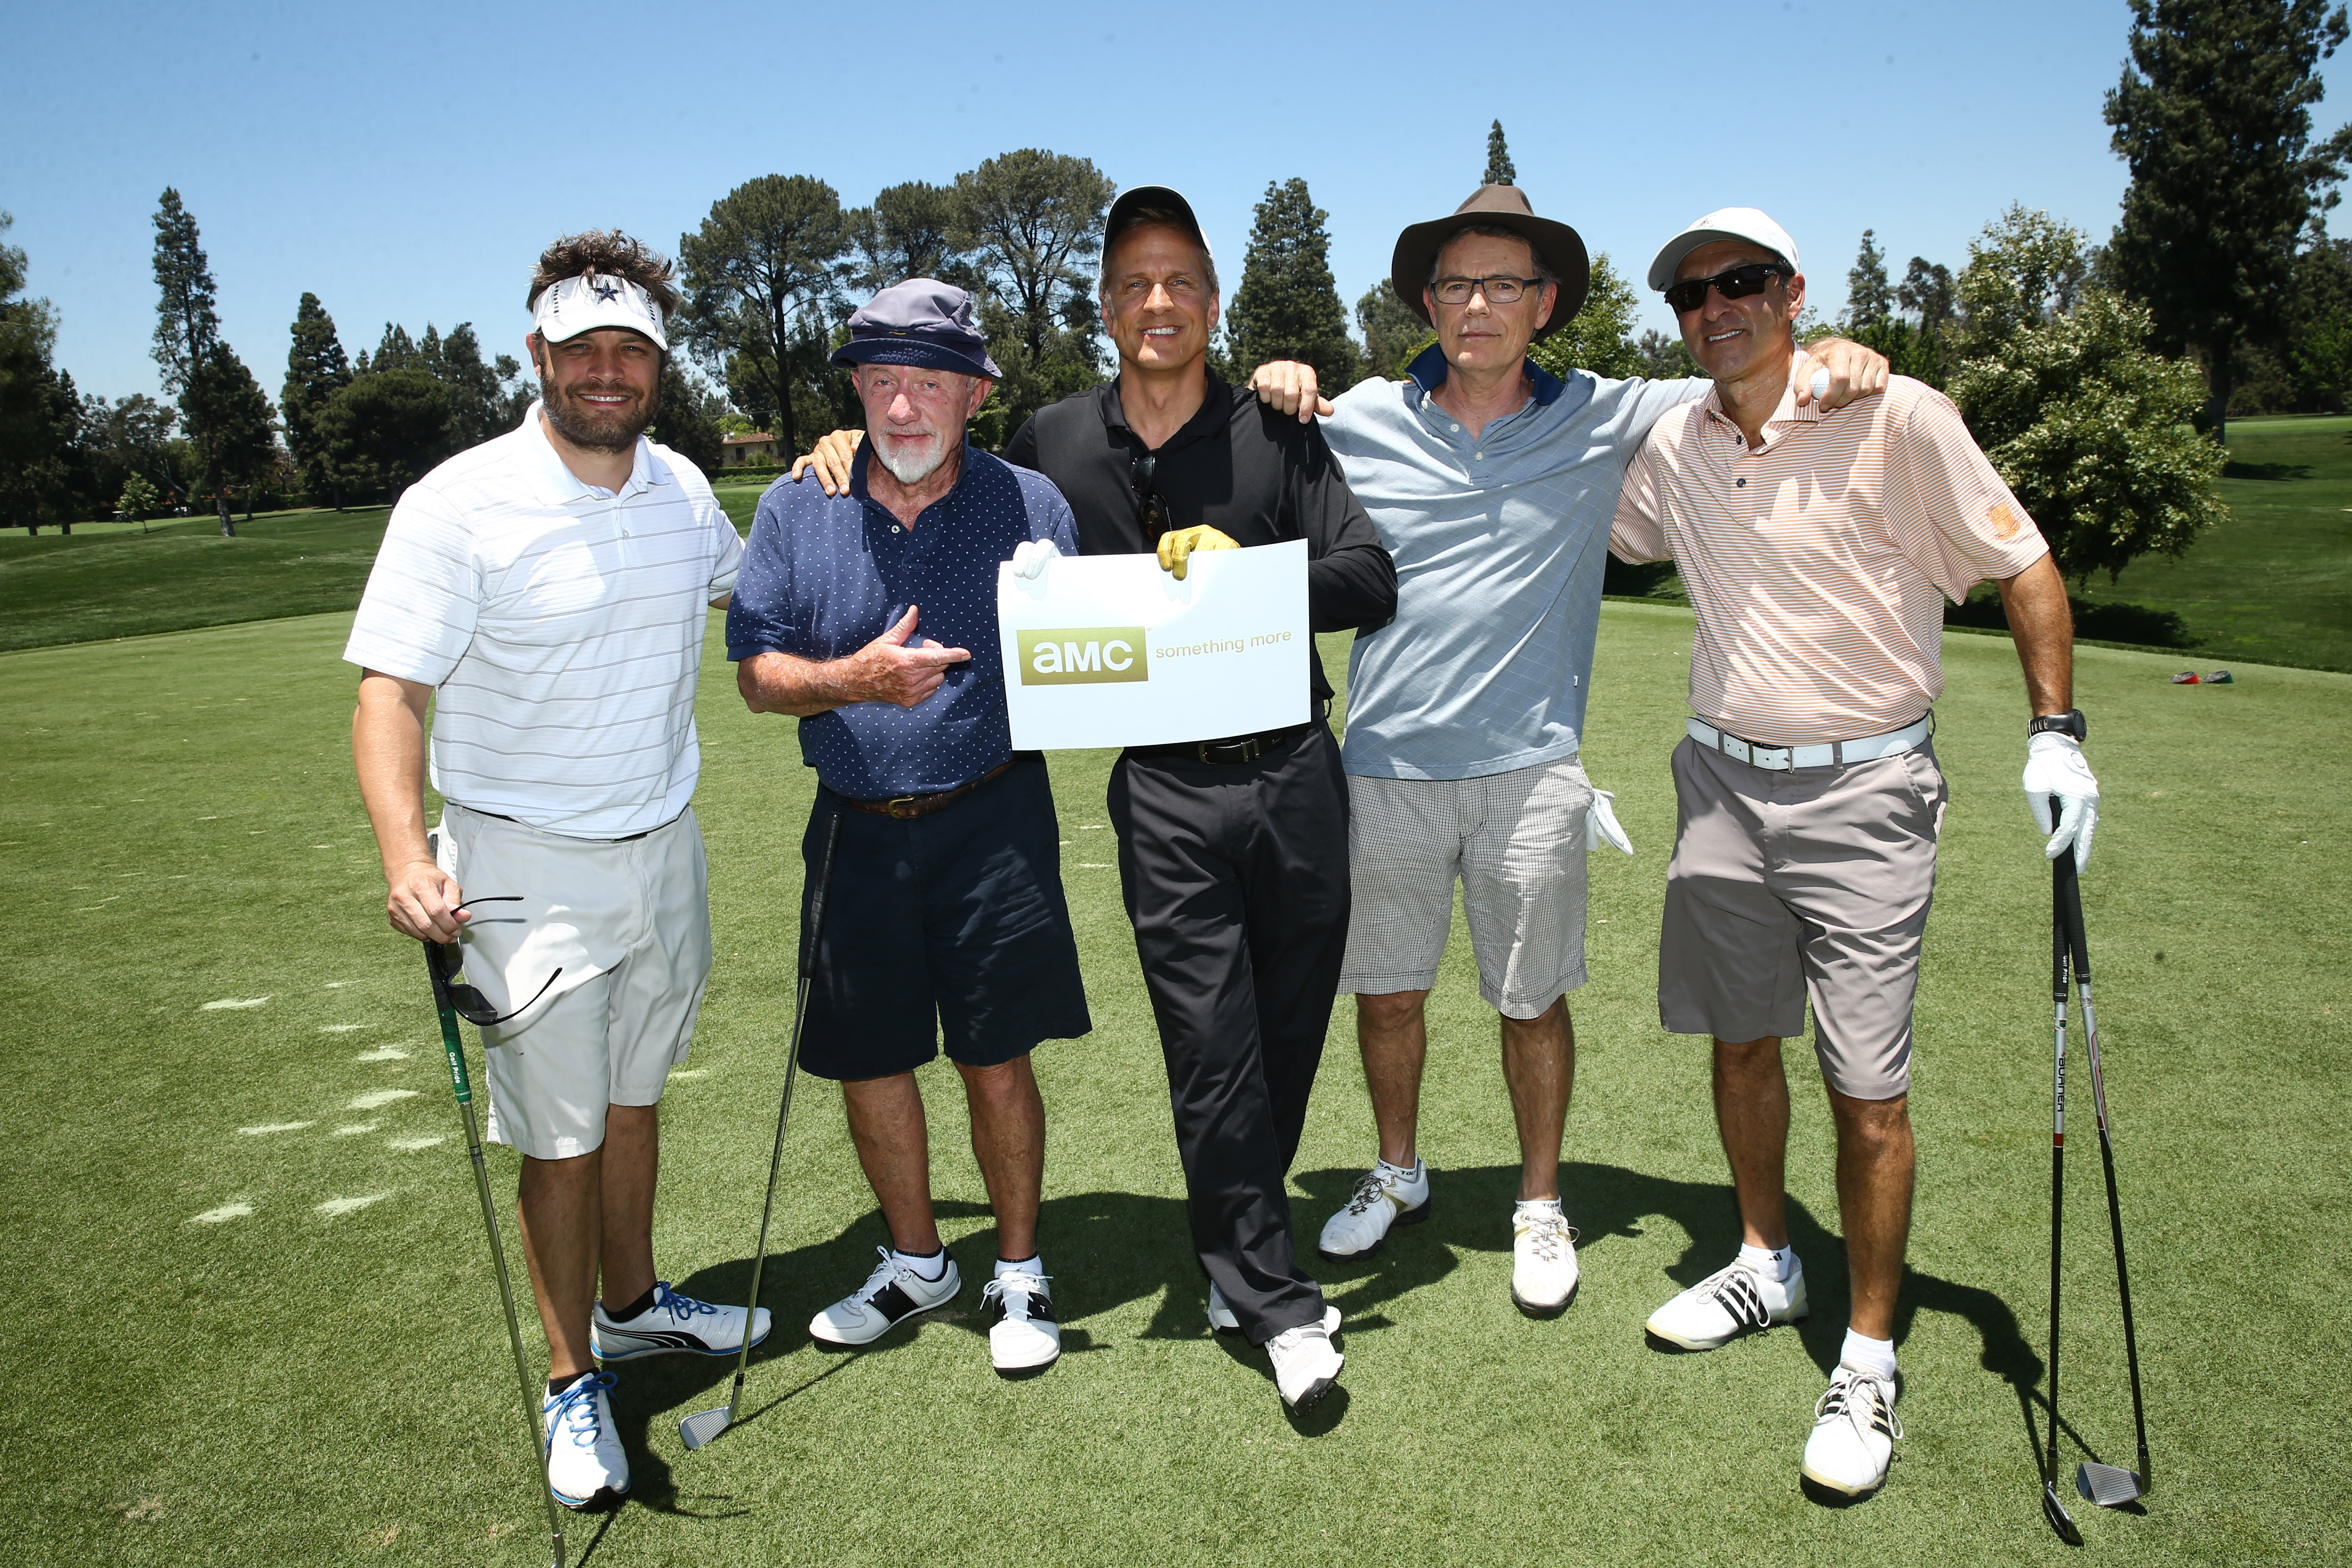 Jay Ferguson, Jonathan Banks, Patrick Fabian, Bruce Greenwood and Steve Lovett of Team AMC play at the Screen Actors Guild Foundation's 6th Annual Los Angeles Golf Classic on June 8, 2015 in Burbank, California. (Photo by Mark Davis/Getty Images for The Screen Actors Guild Foundation)